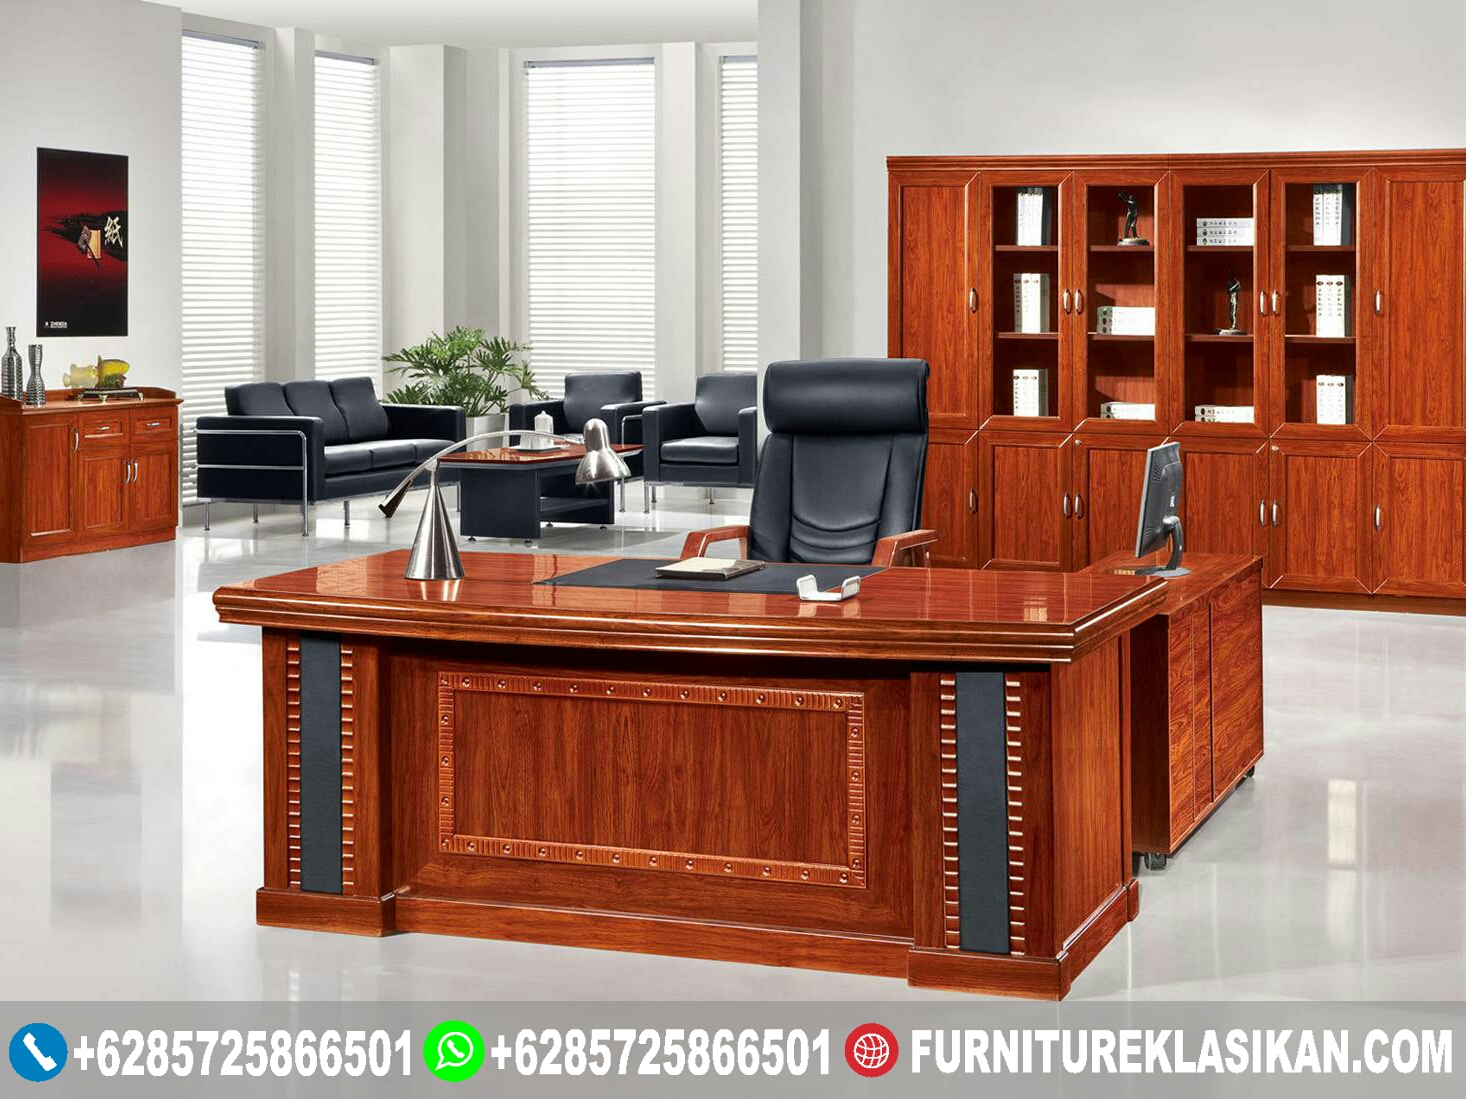 https://furnitureklasikan.com/wp-content/uploads/2018/03/Meja-Perkantoran-Jati.jpg